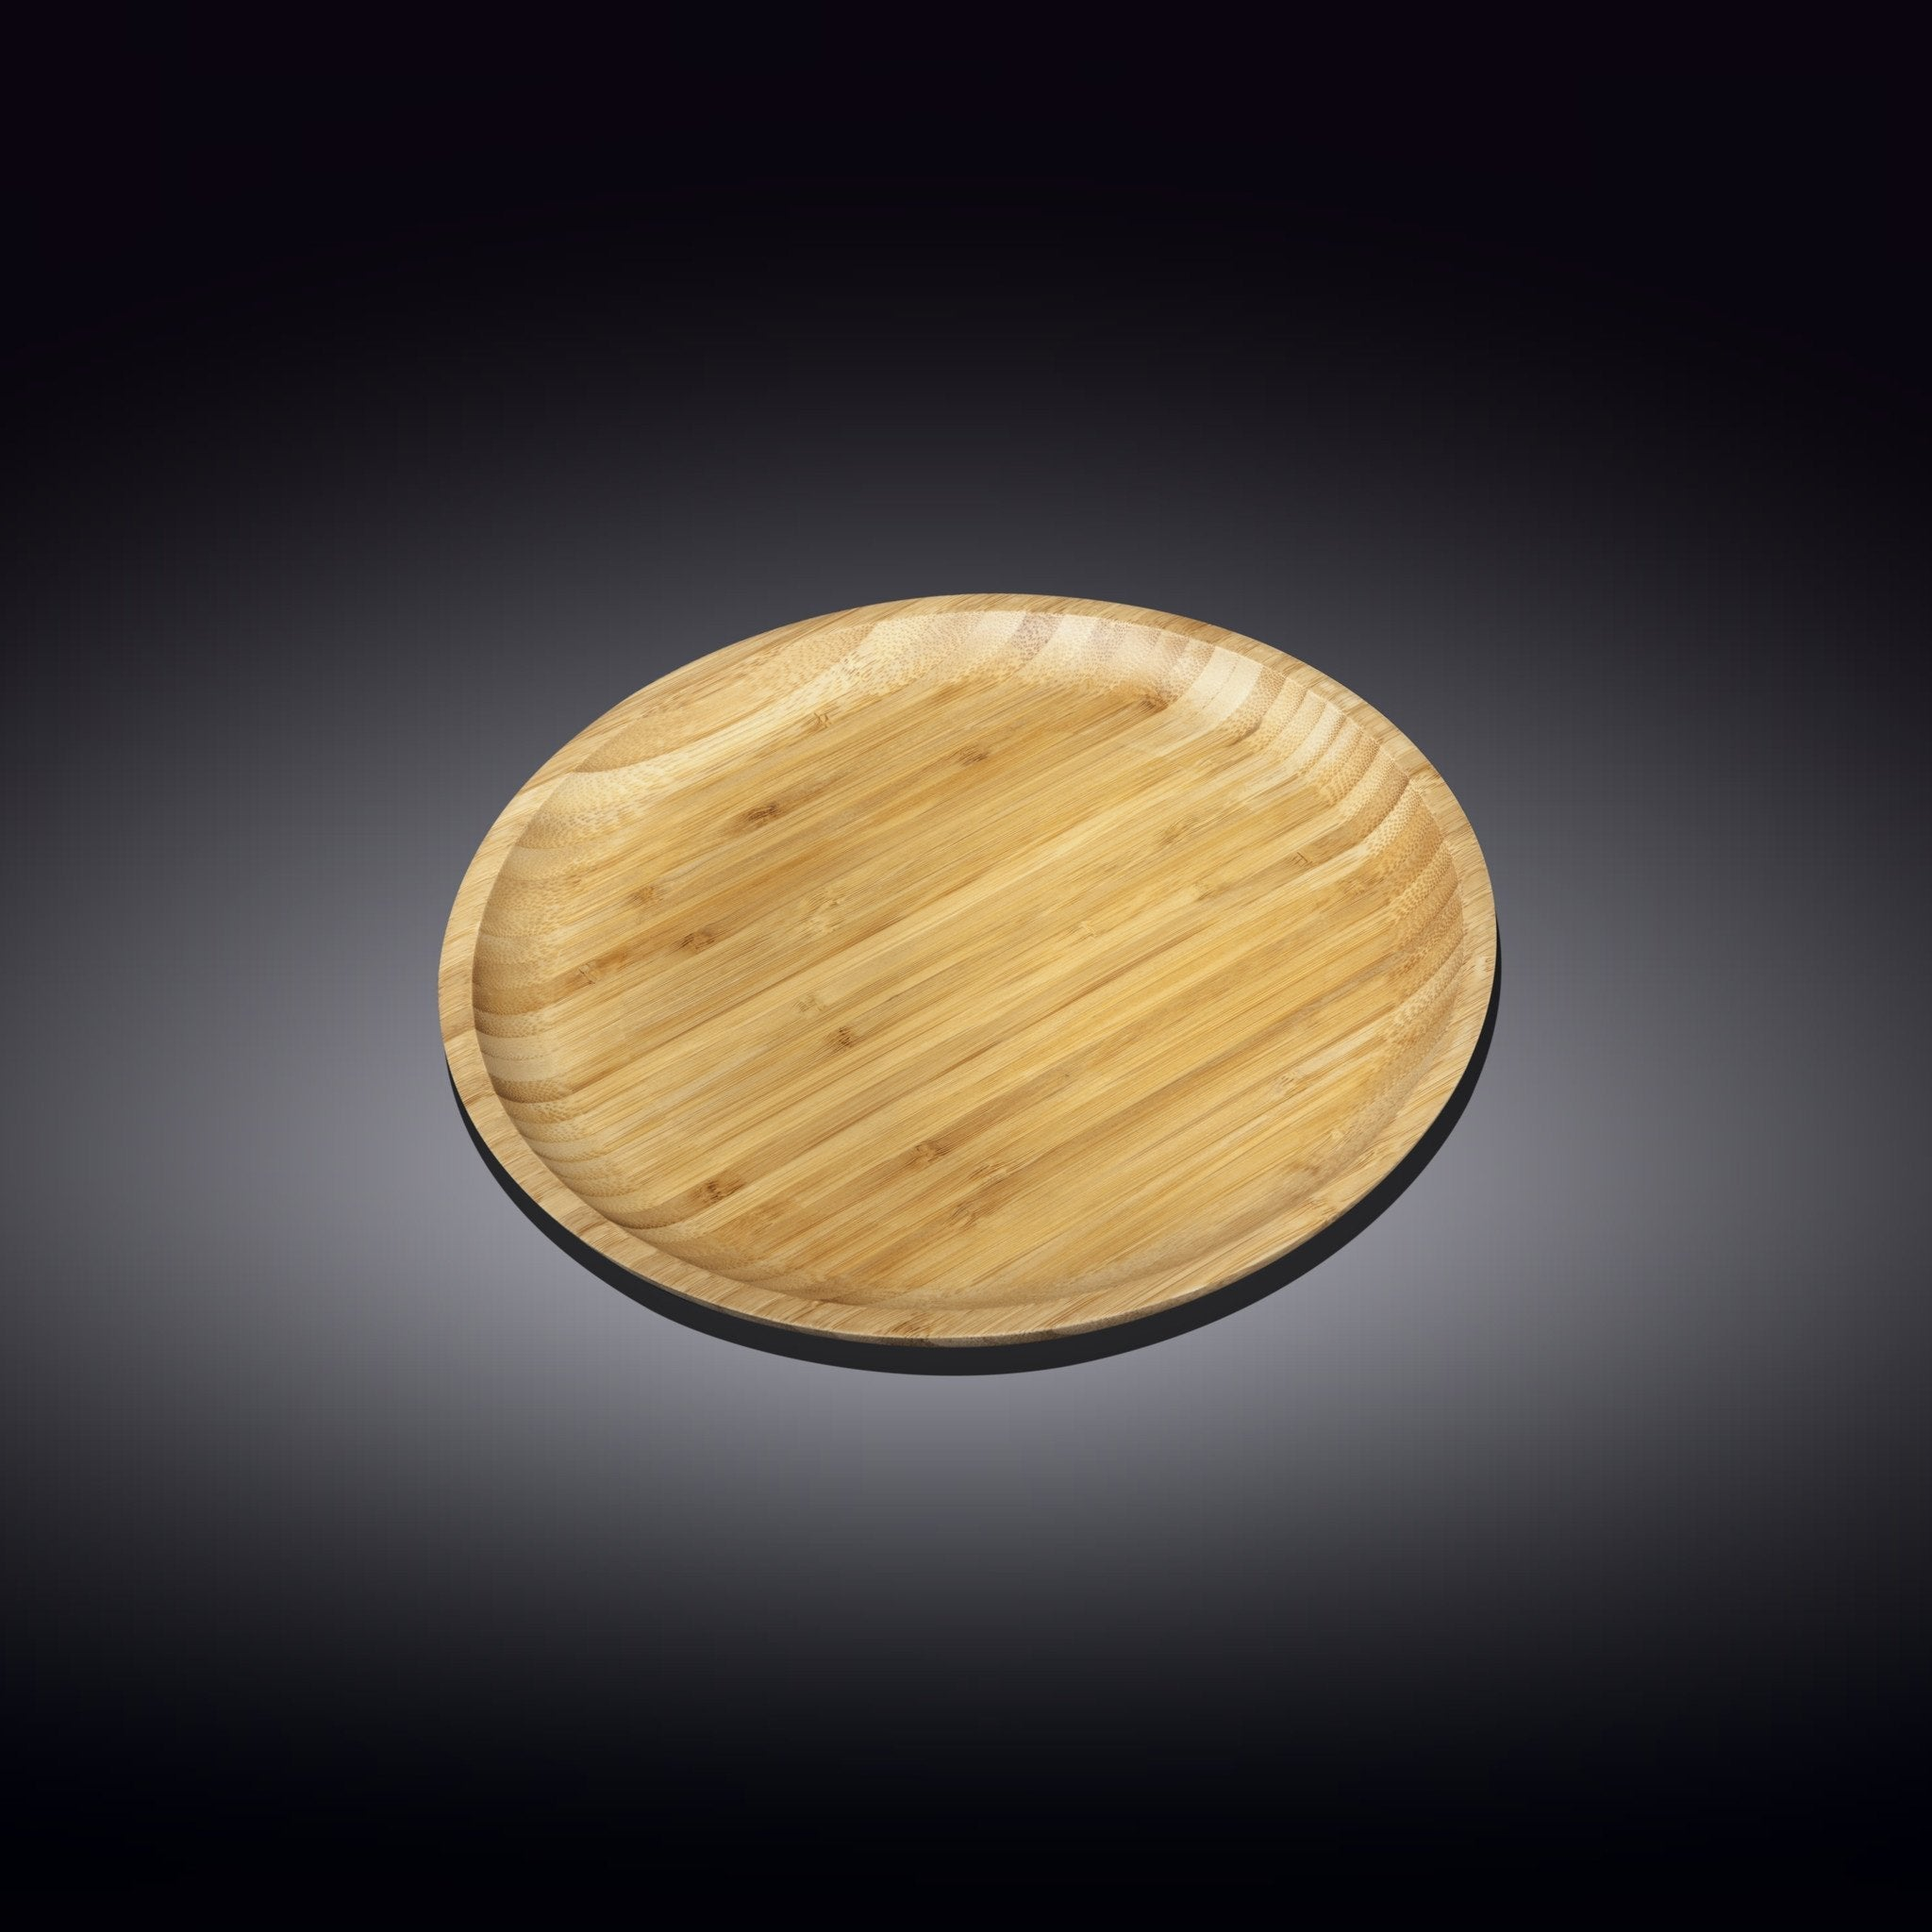 NATURAL BAMBOO PLATE 6"